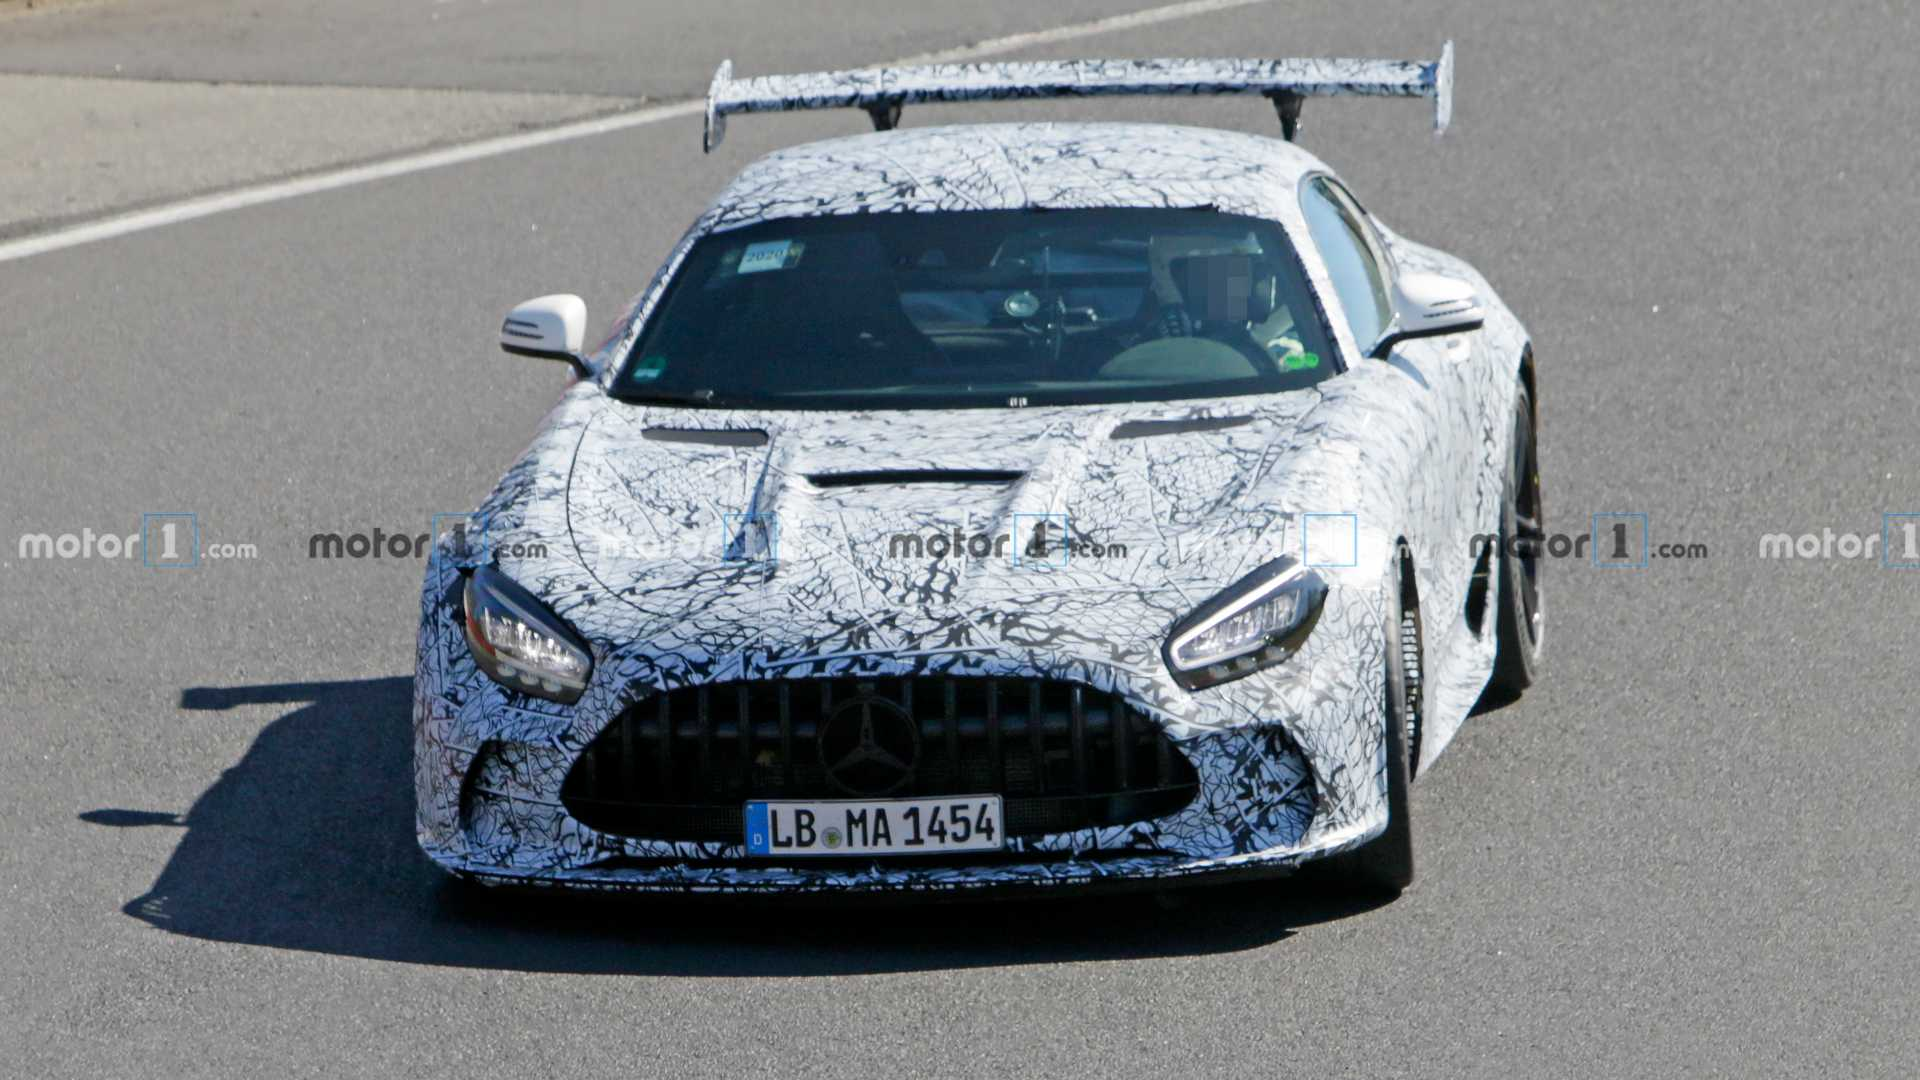 Mercedes-AMG GT Black Series reportedly has 711 bhp